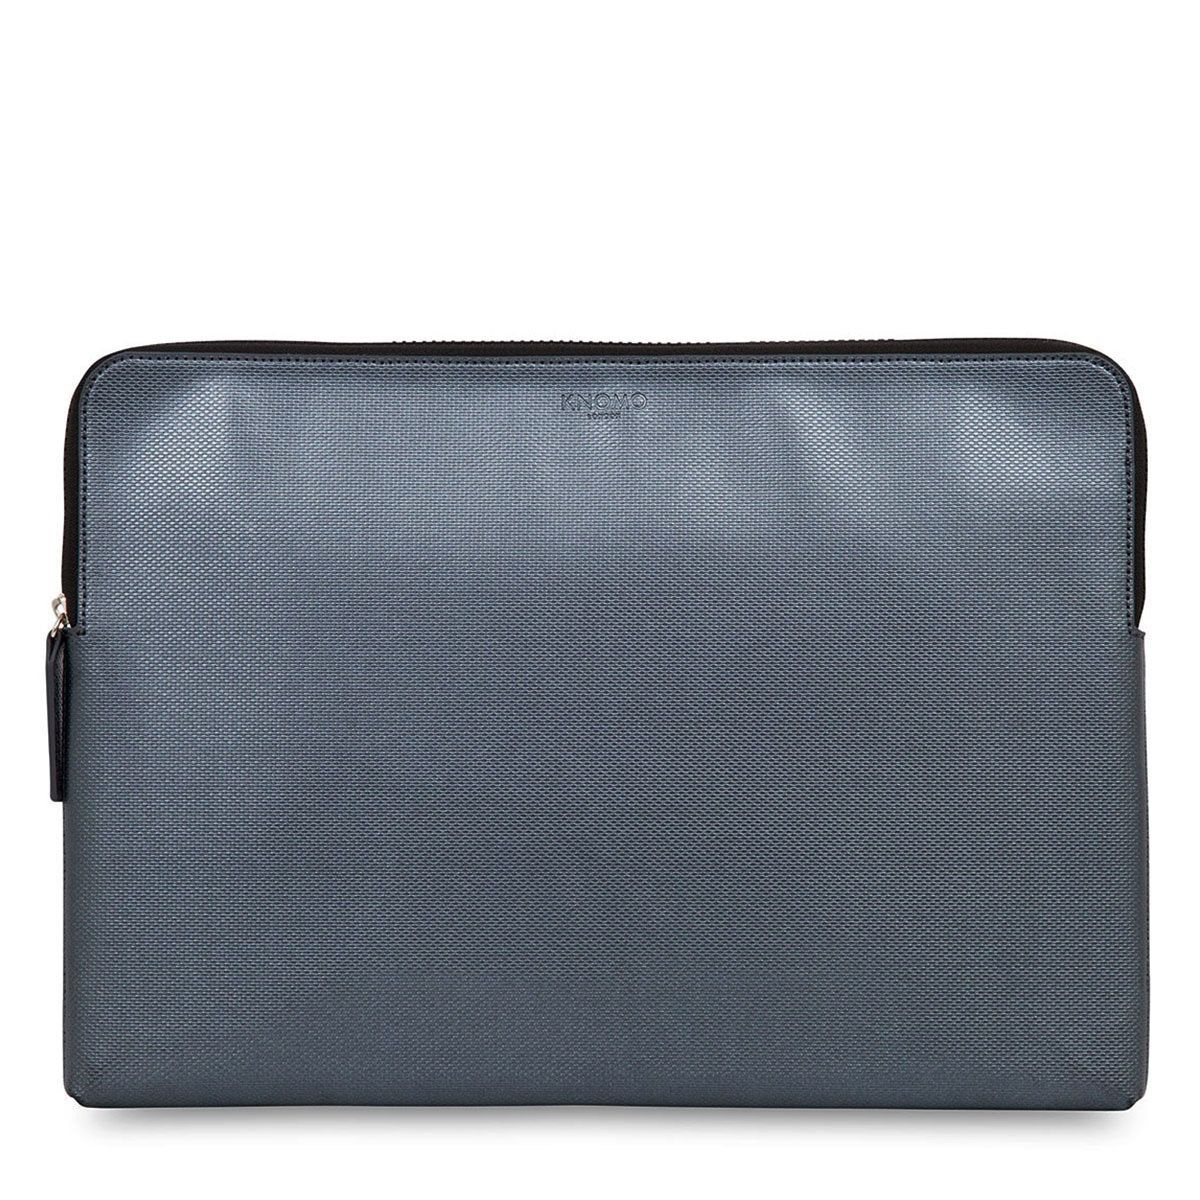 Laptophoes Knomo Laptop Sleeve Embossed Silver 15 inch